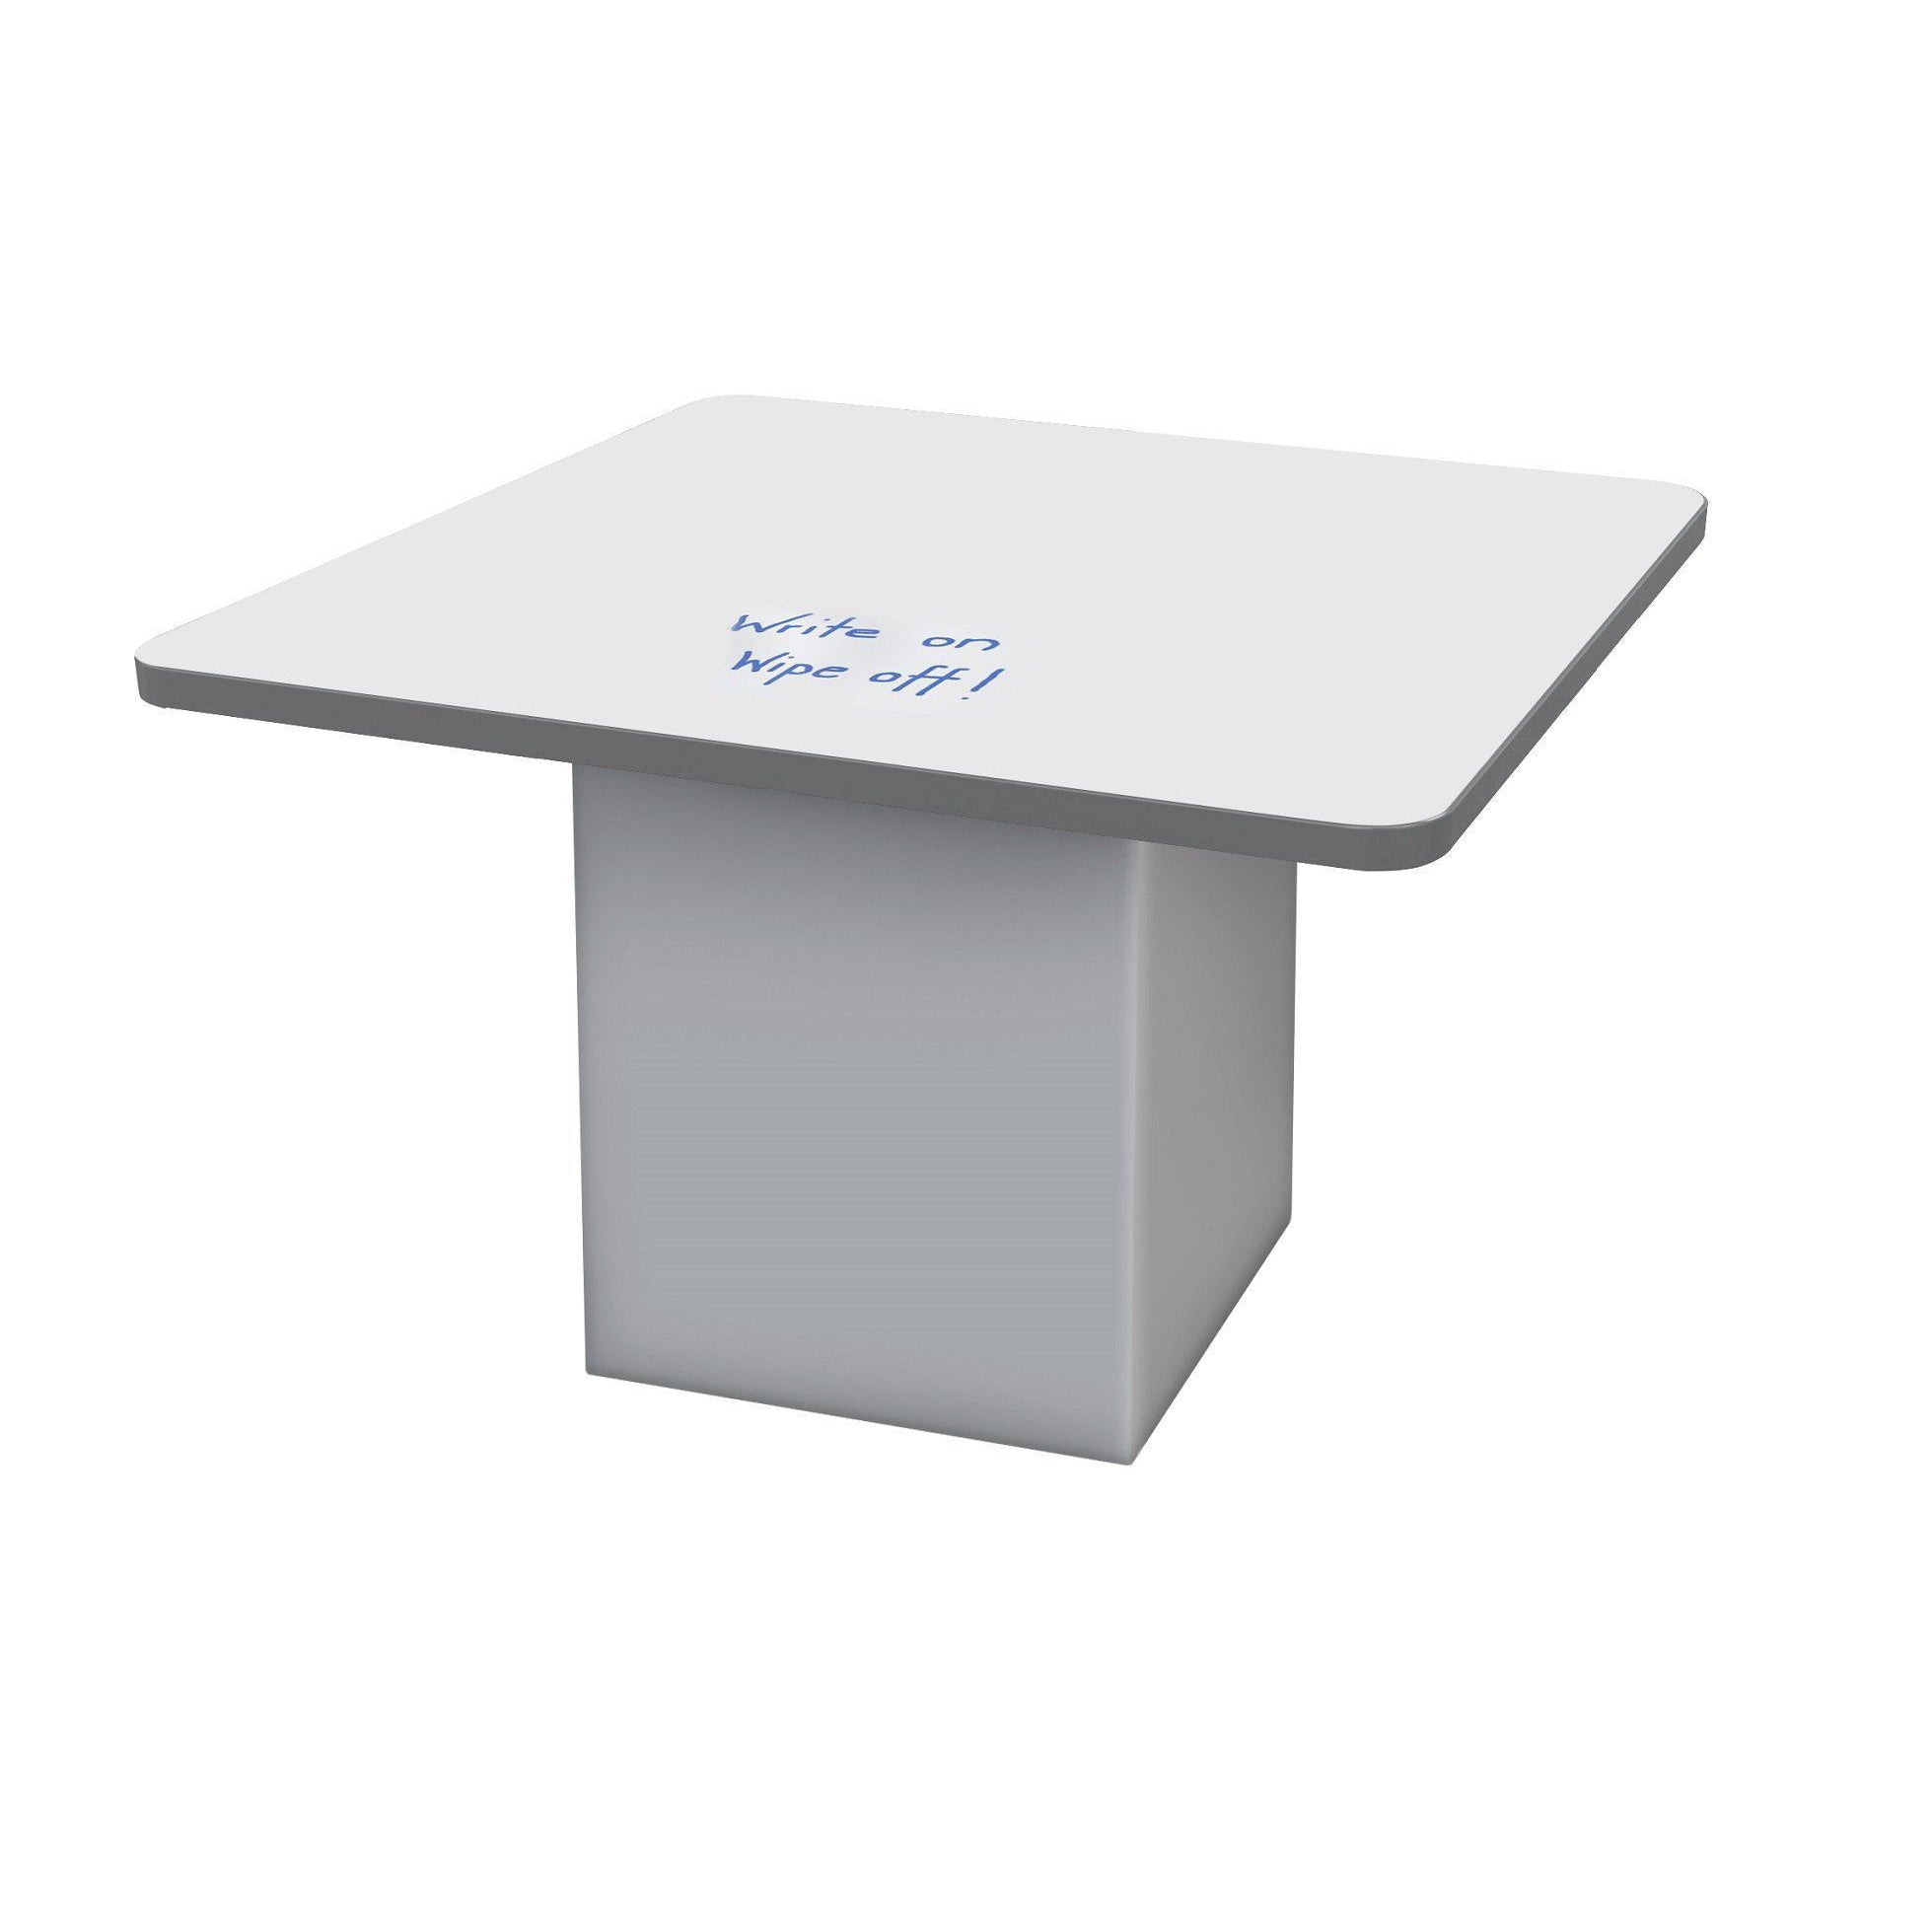 "Sonik™ Soft Seating 48"" Square Table with Markerboard Top and Power/Data Supply-Soft Seating-29""-Markerboard/Gray-Frost"